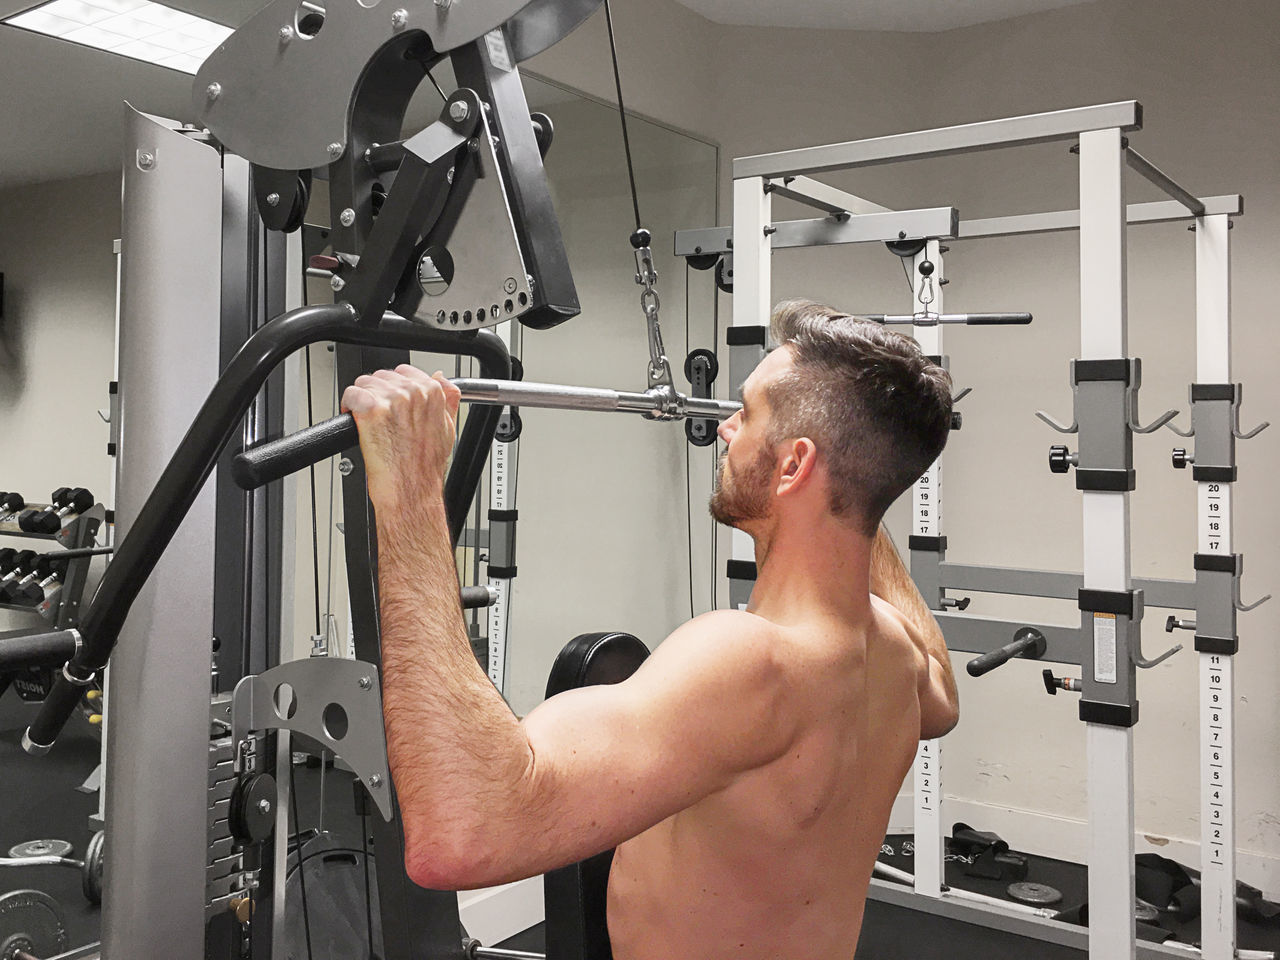 Man doing lat pulldowns at the gym Adult Adults Only Athlete Business Finance And Industry Close-up Day Gym Health Club Healthy Lifestyle Human Body Part Hygiene Indoors  Lifestyles Men Mid Adult Muscular Build One Man Only One Person Only Men People Sports Training Strength Wellbeing